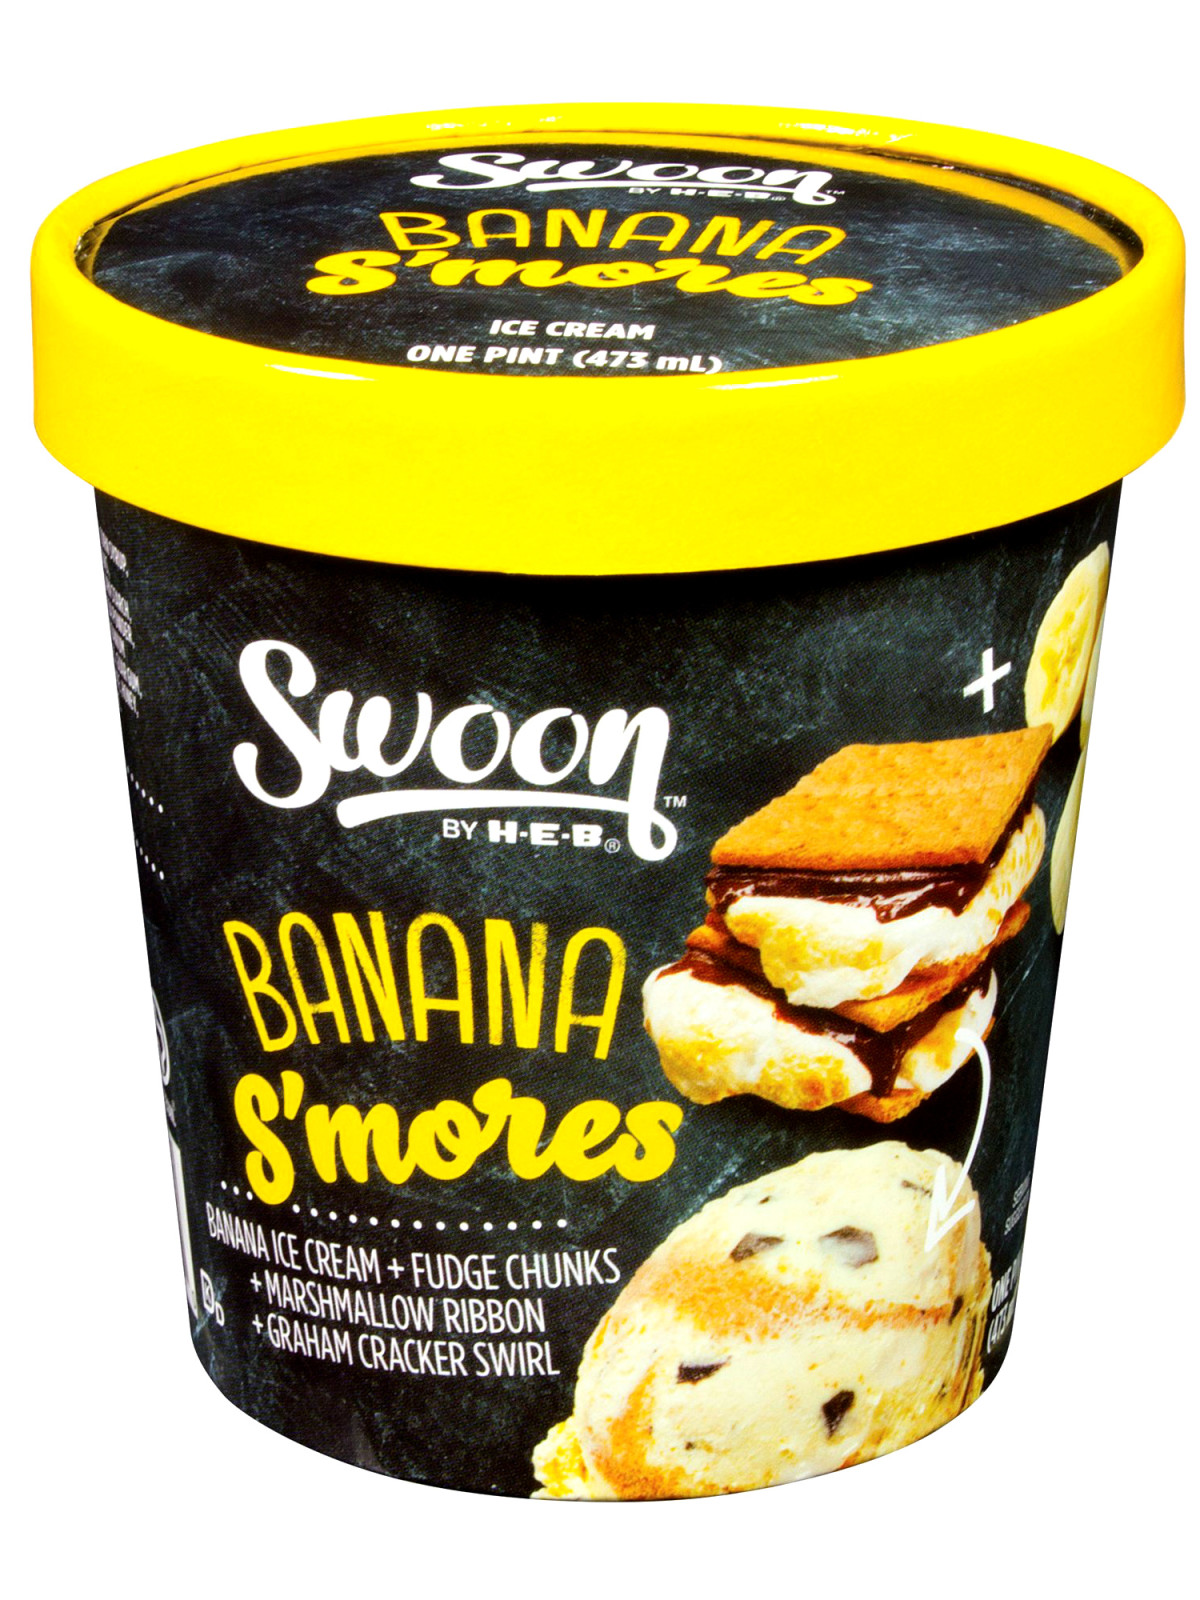 H-E-B Swoon ice cream Banana S'mores